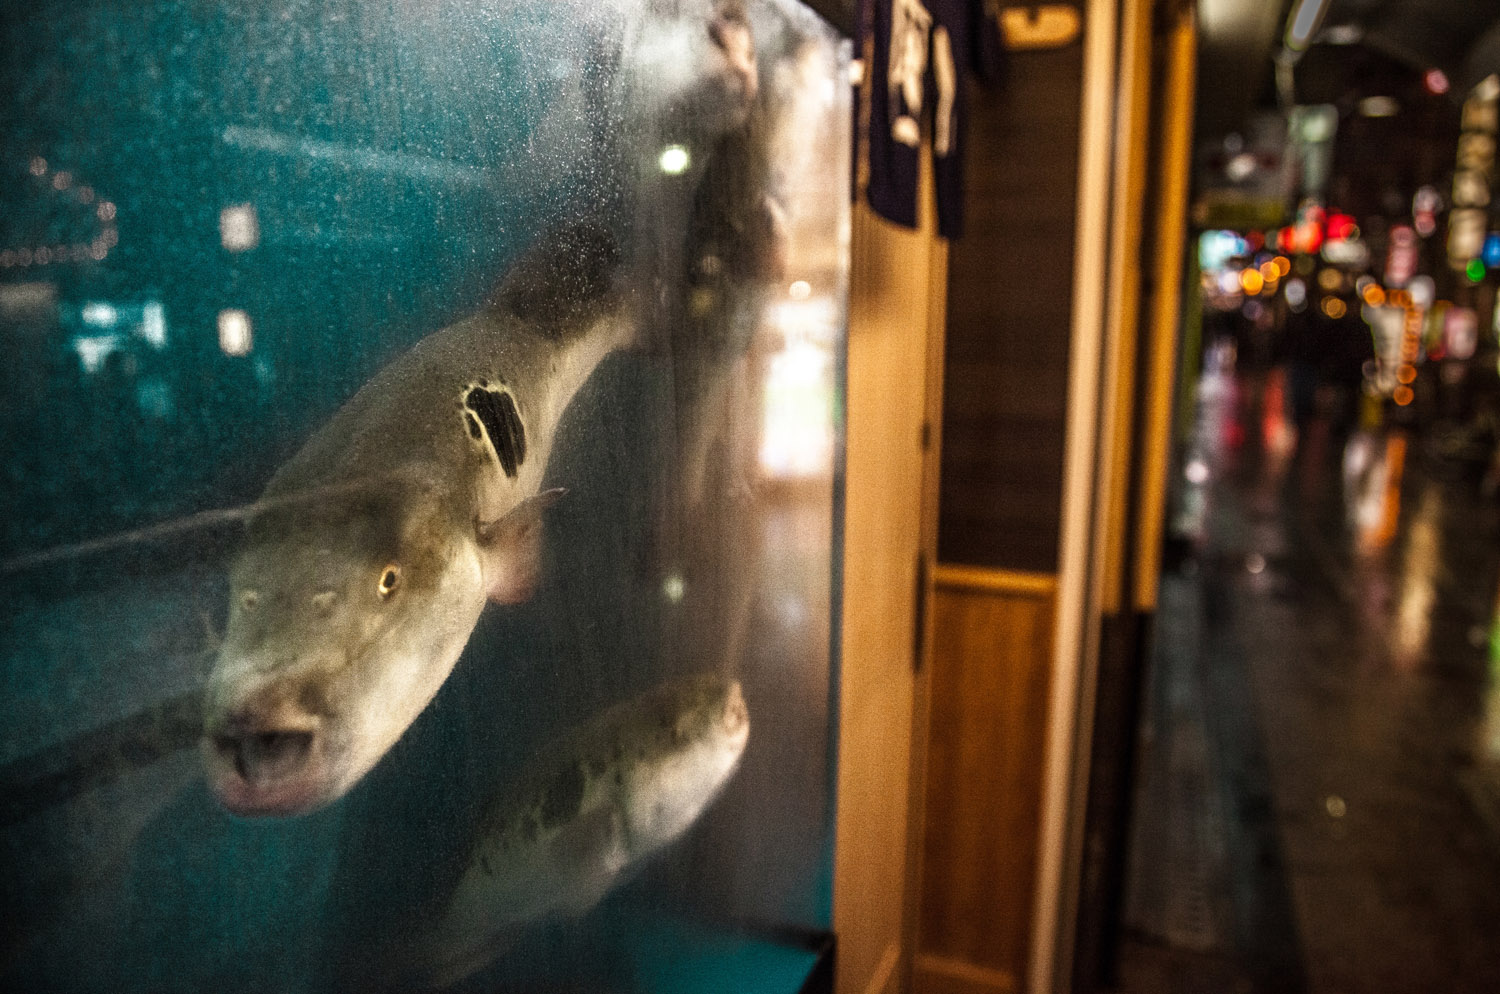 Poisonous Blowfish (fugu) stare out from their tank onto downtown city streets, Osaka